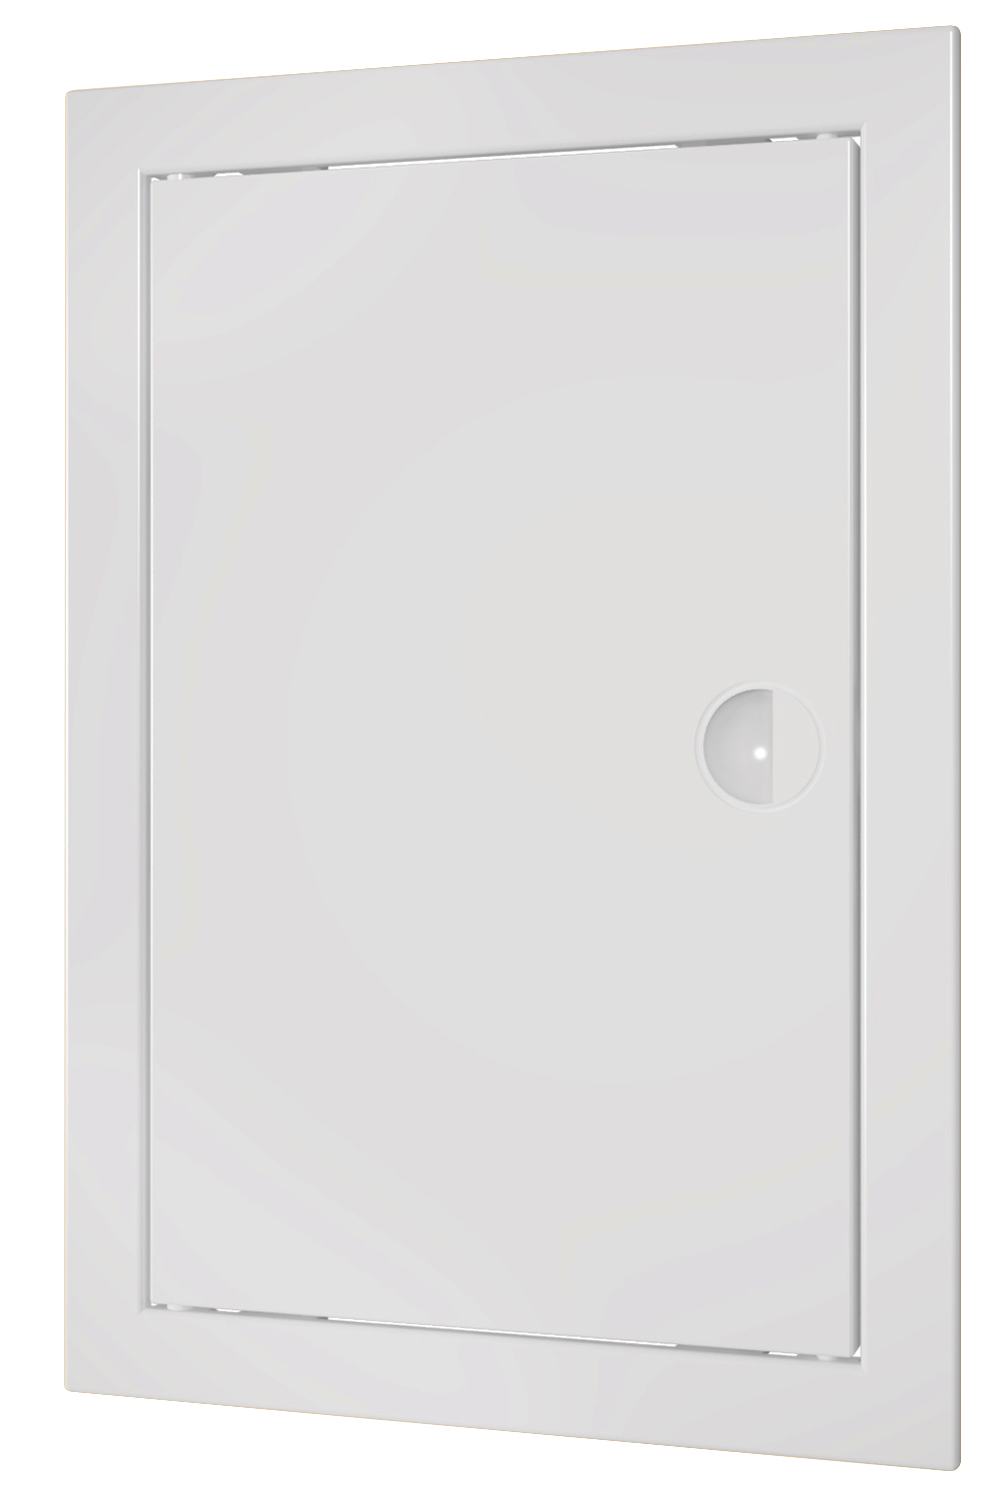 100x100mm Access Panels Inspection Hatch Access Door High Quality ABS Plastic